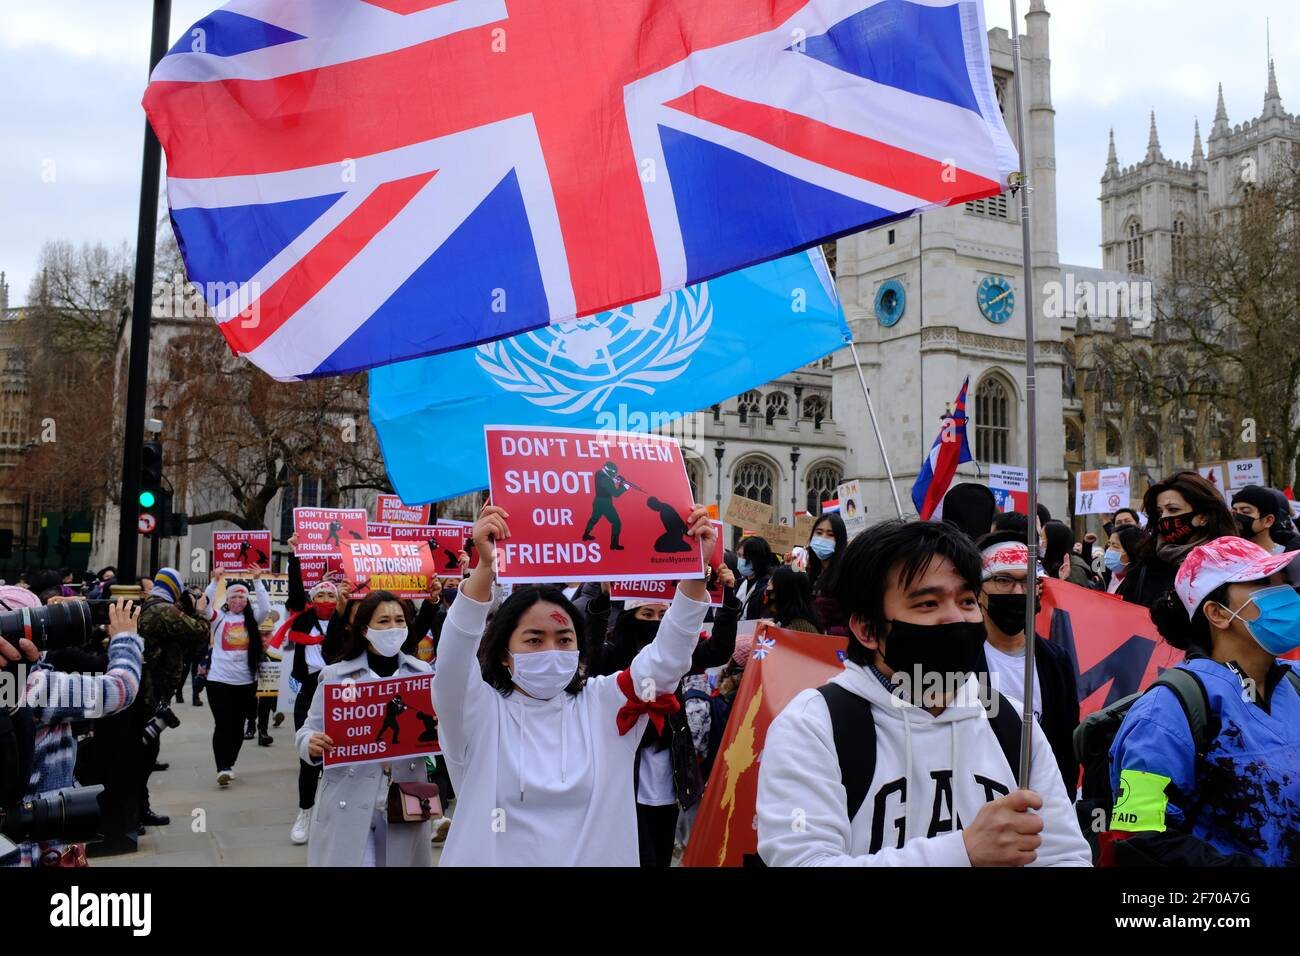 LONDON - 3RD APRIL 2021: Protesters on Parliament Square against the Chinese and Russian supported military coup in Myanmar Burma. Stock Photo